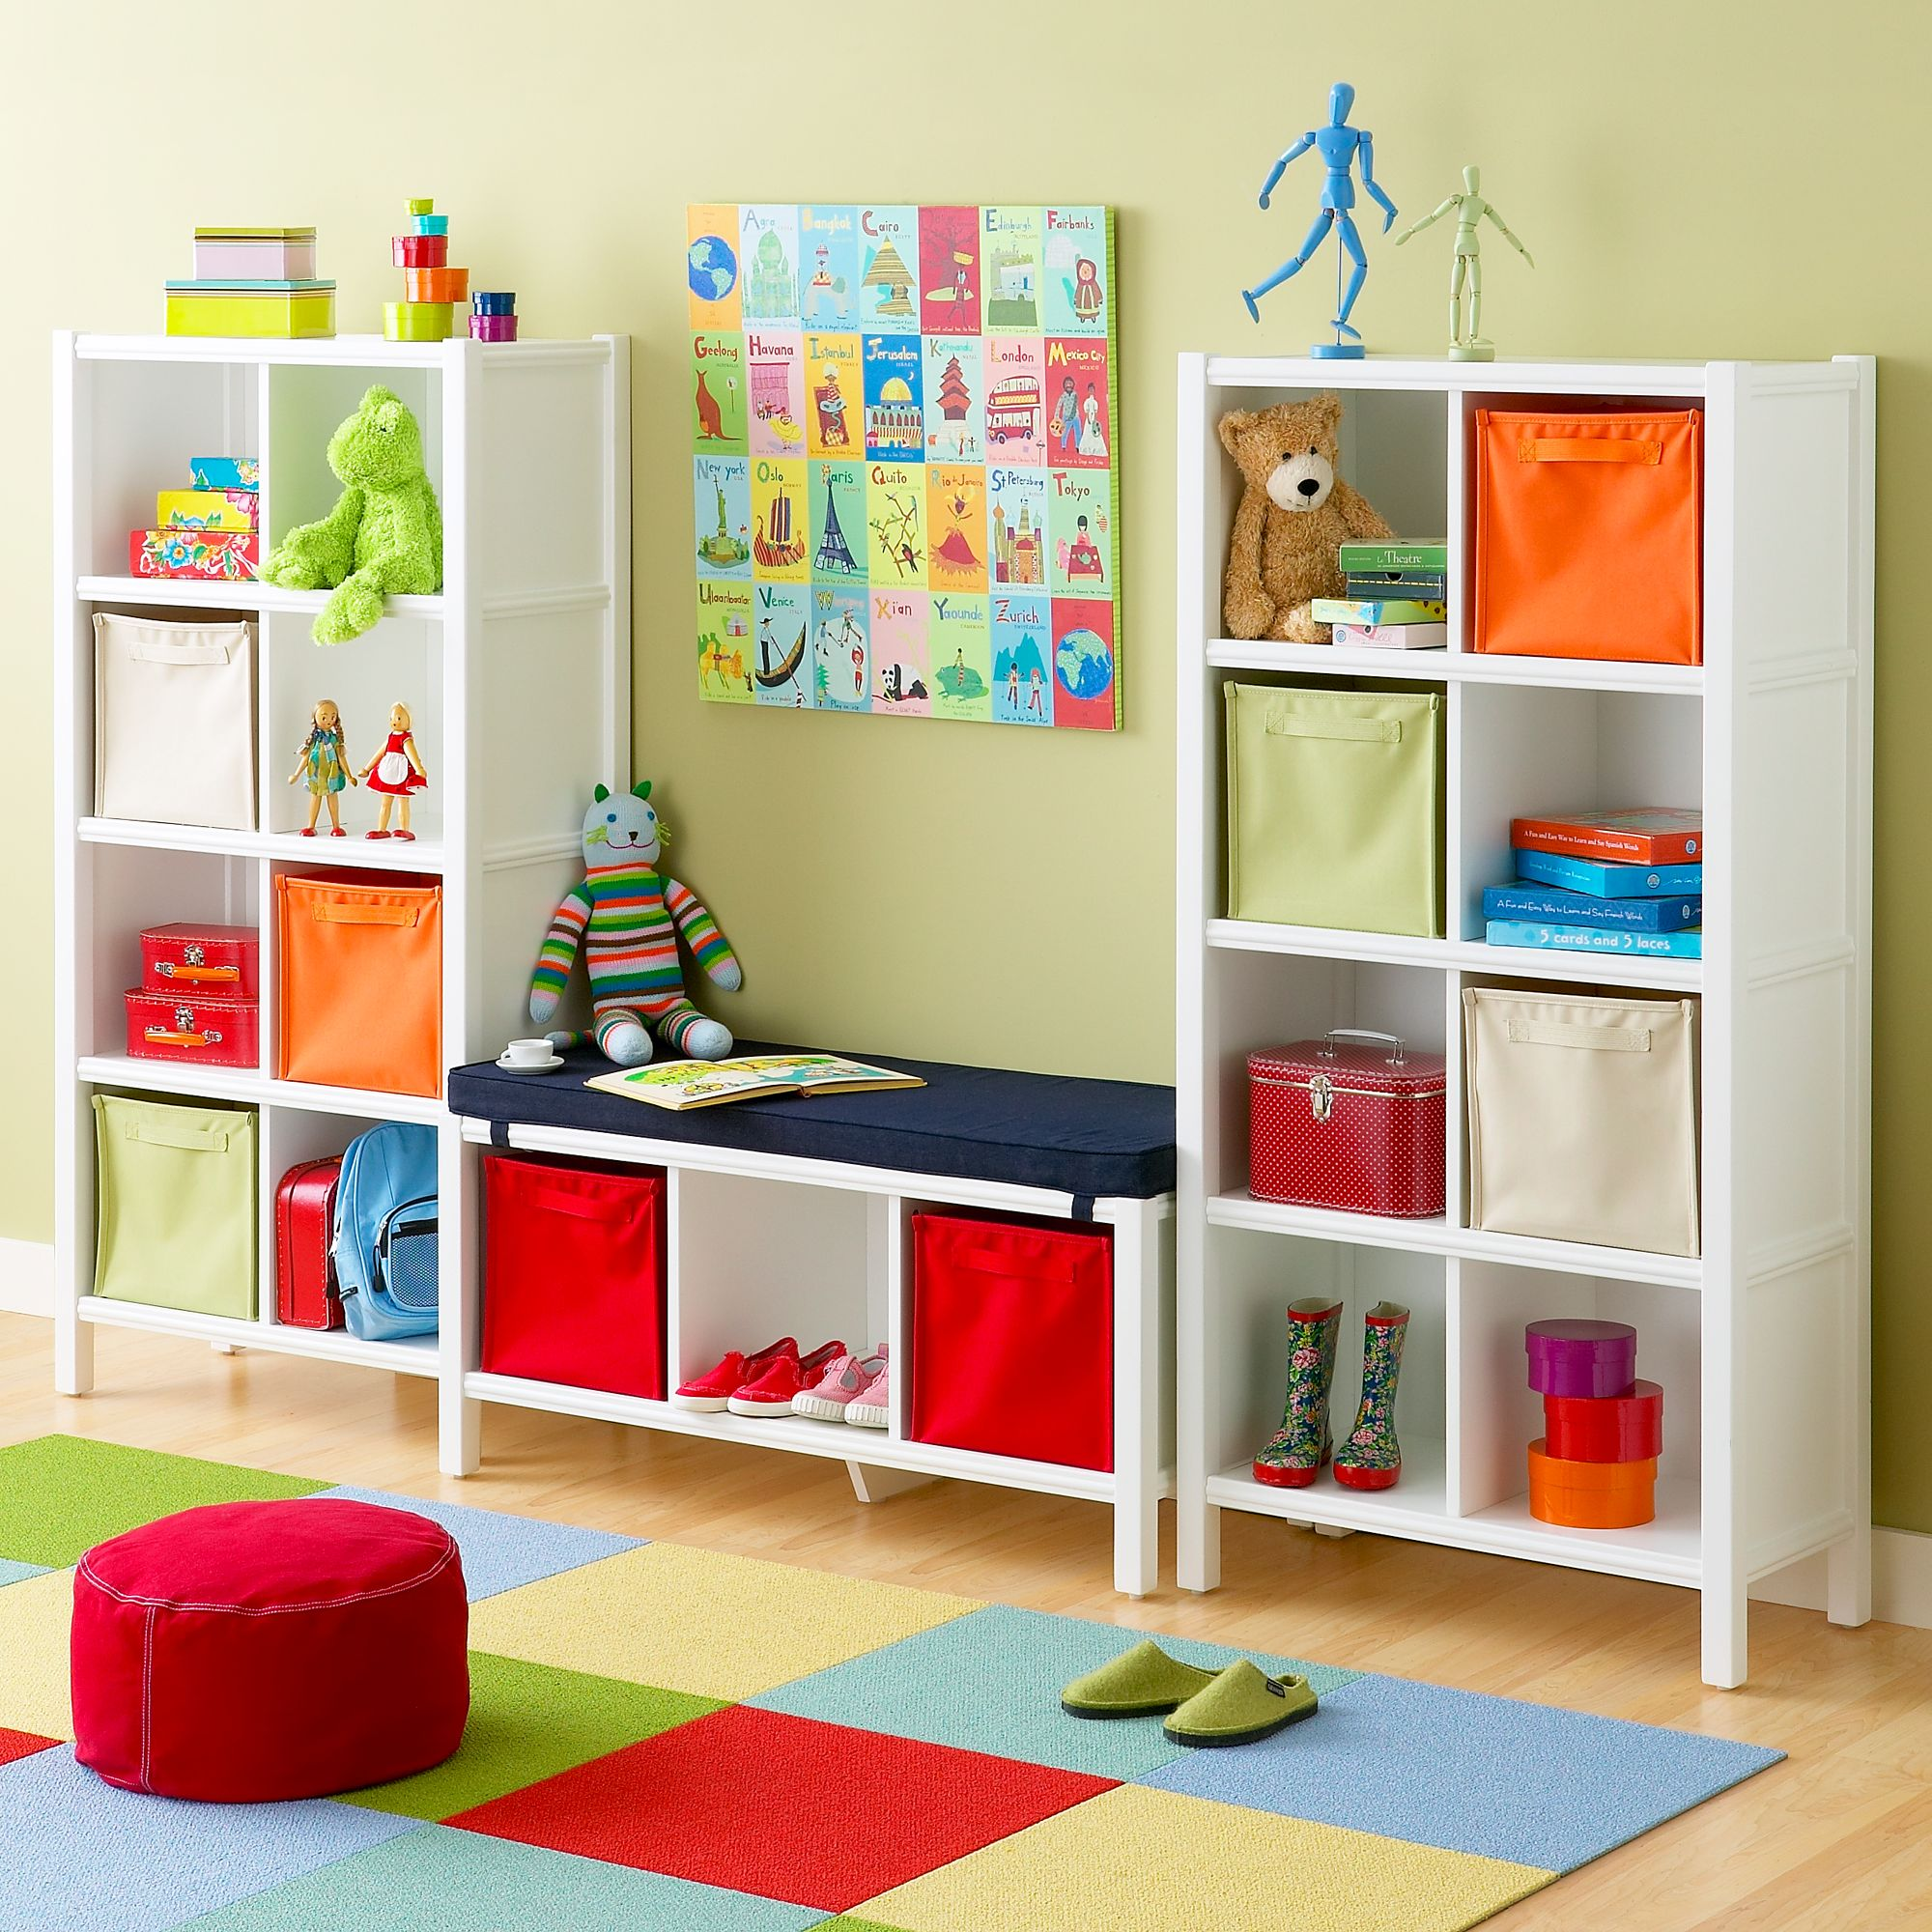 Boys-room-decor-colorful-kids-rooms